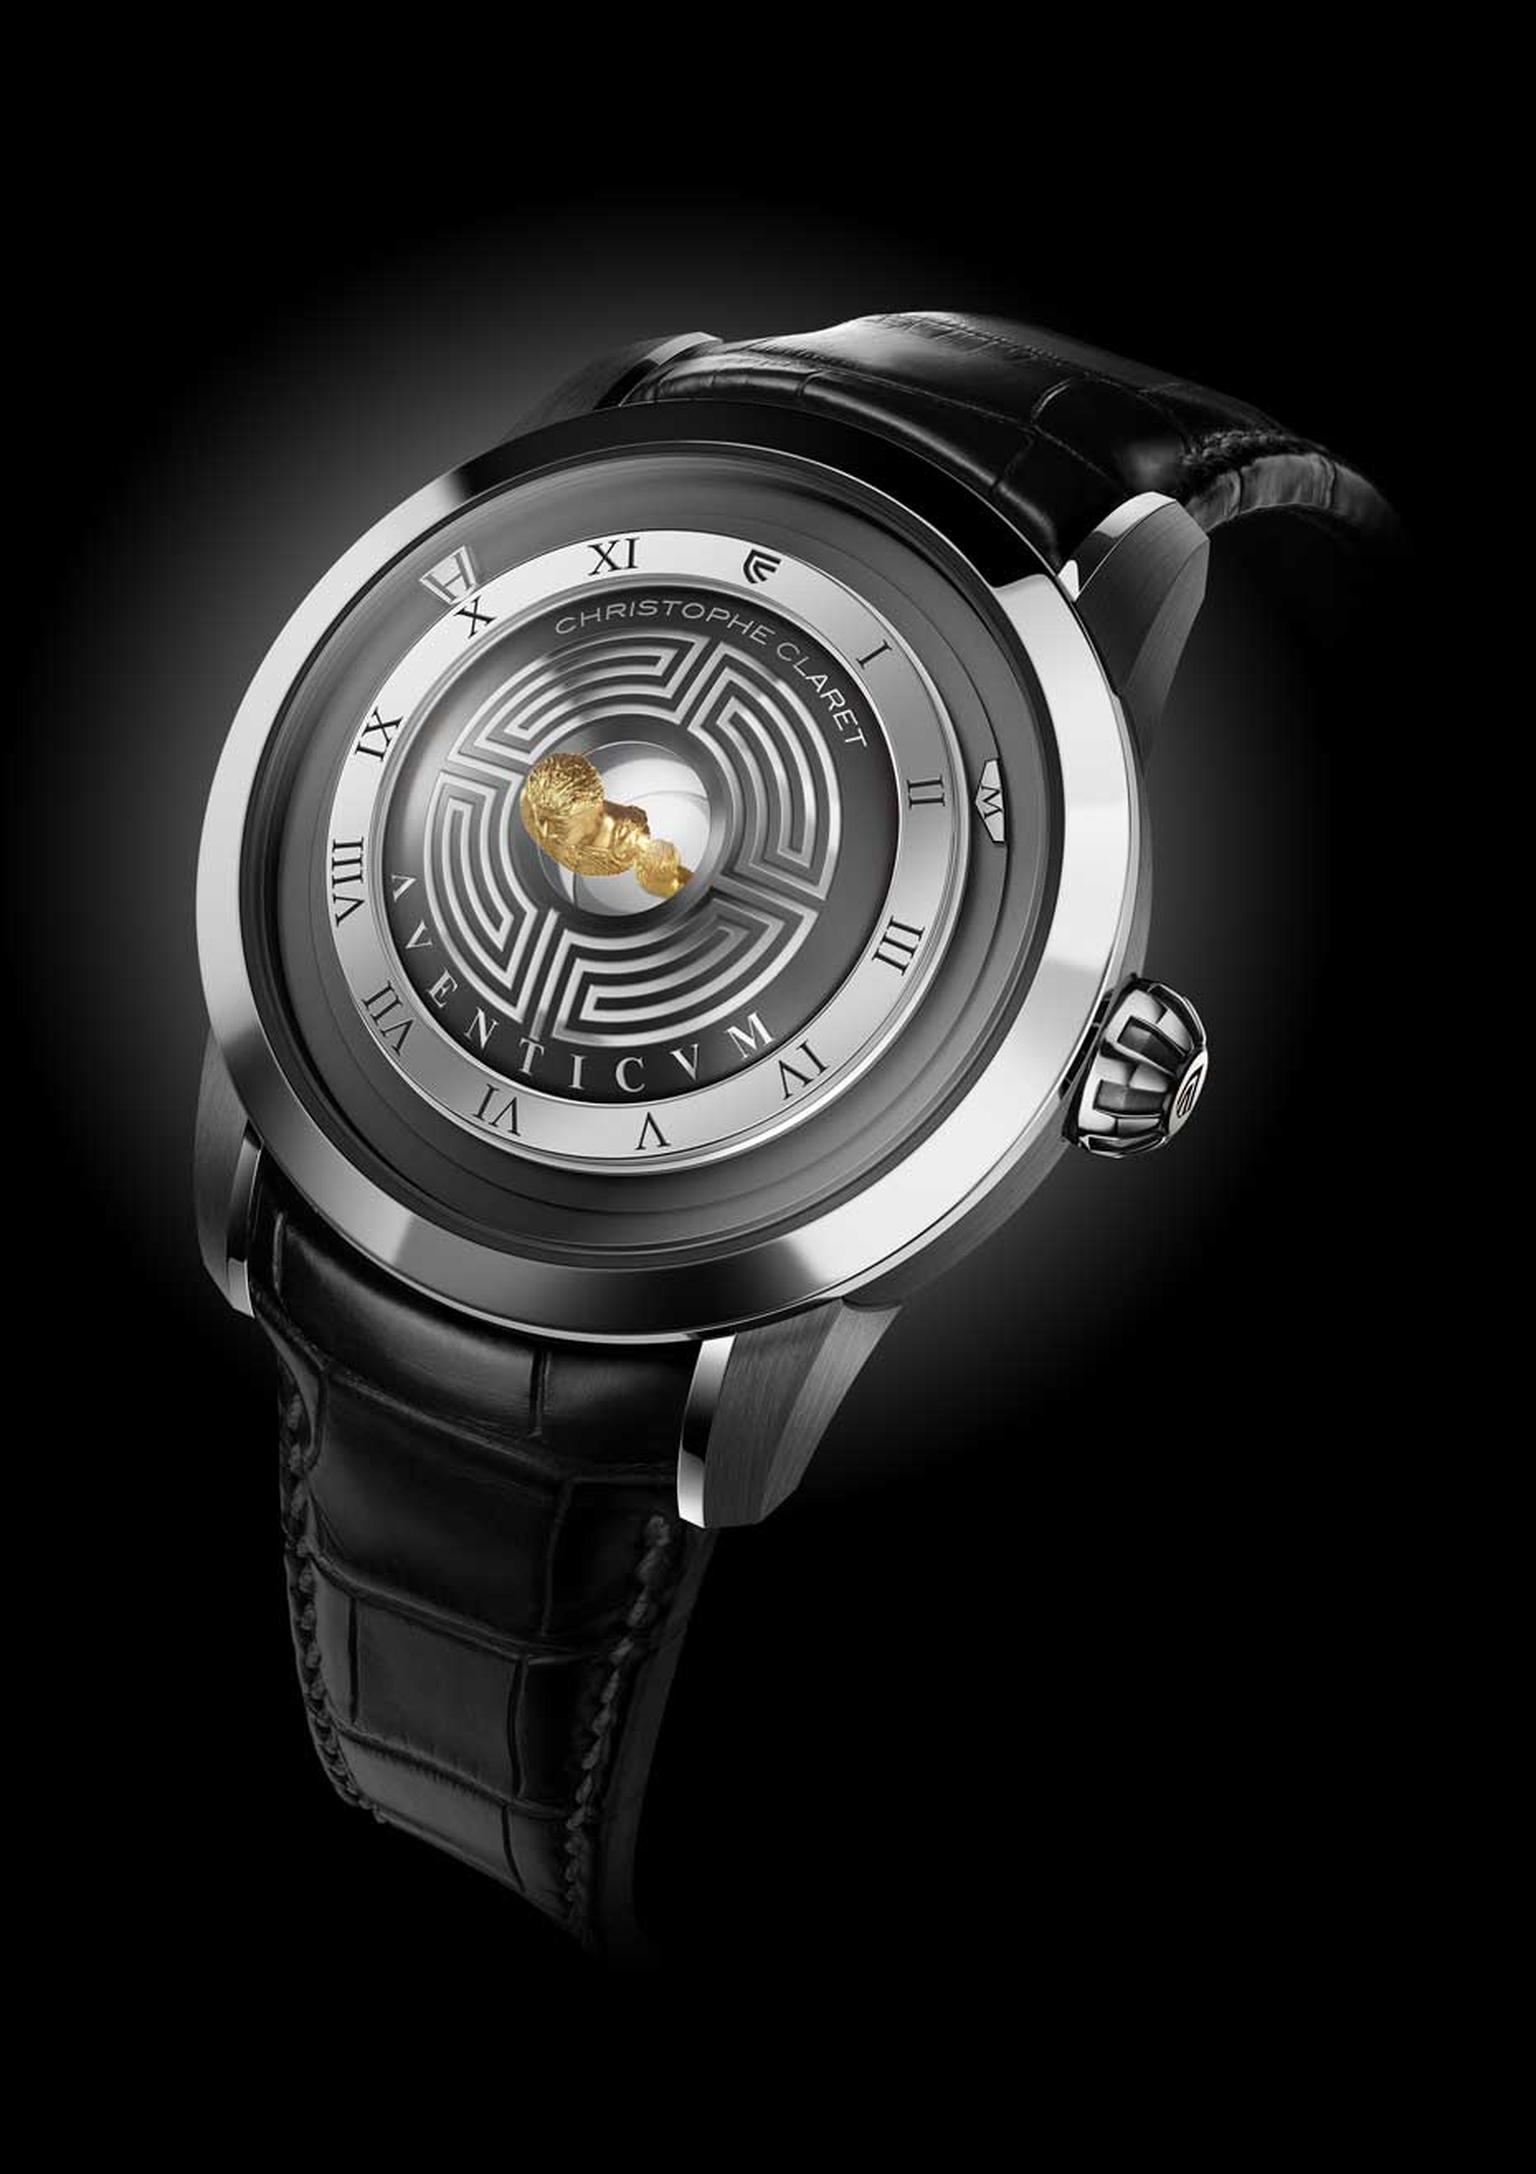 Christophe Claret's Aventicum watch also features five chariots racing around the mini circus.